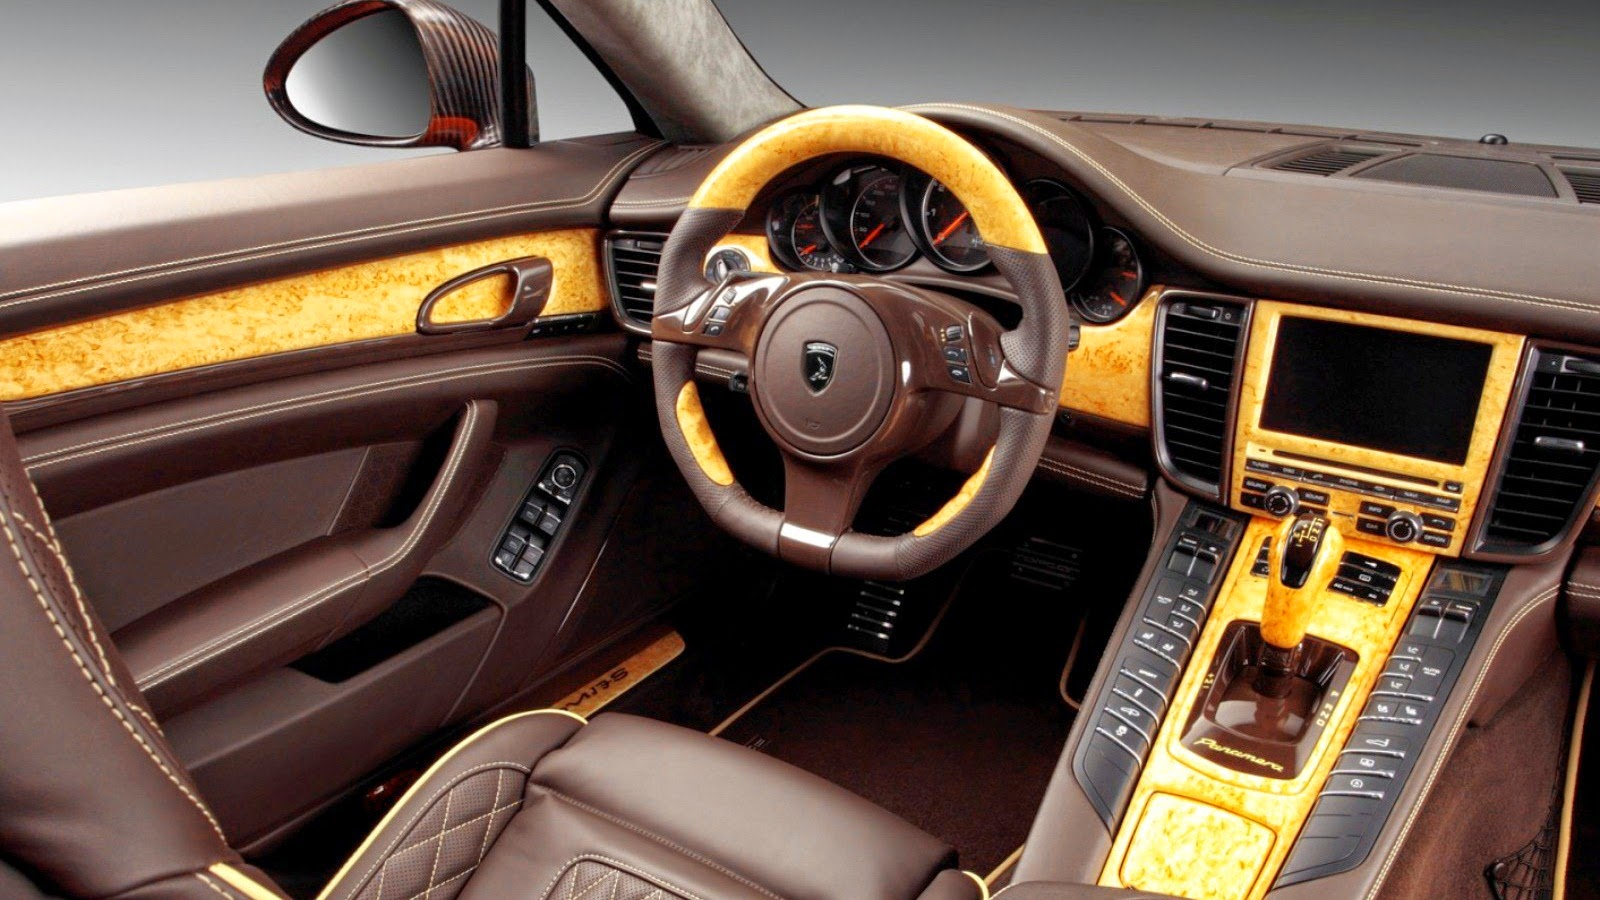 Porsche Panamera Stingray GTR Interior